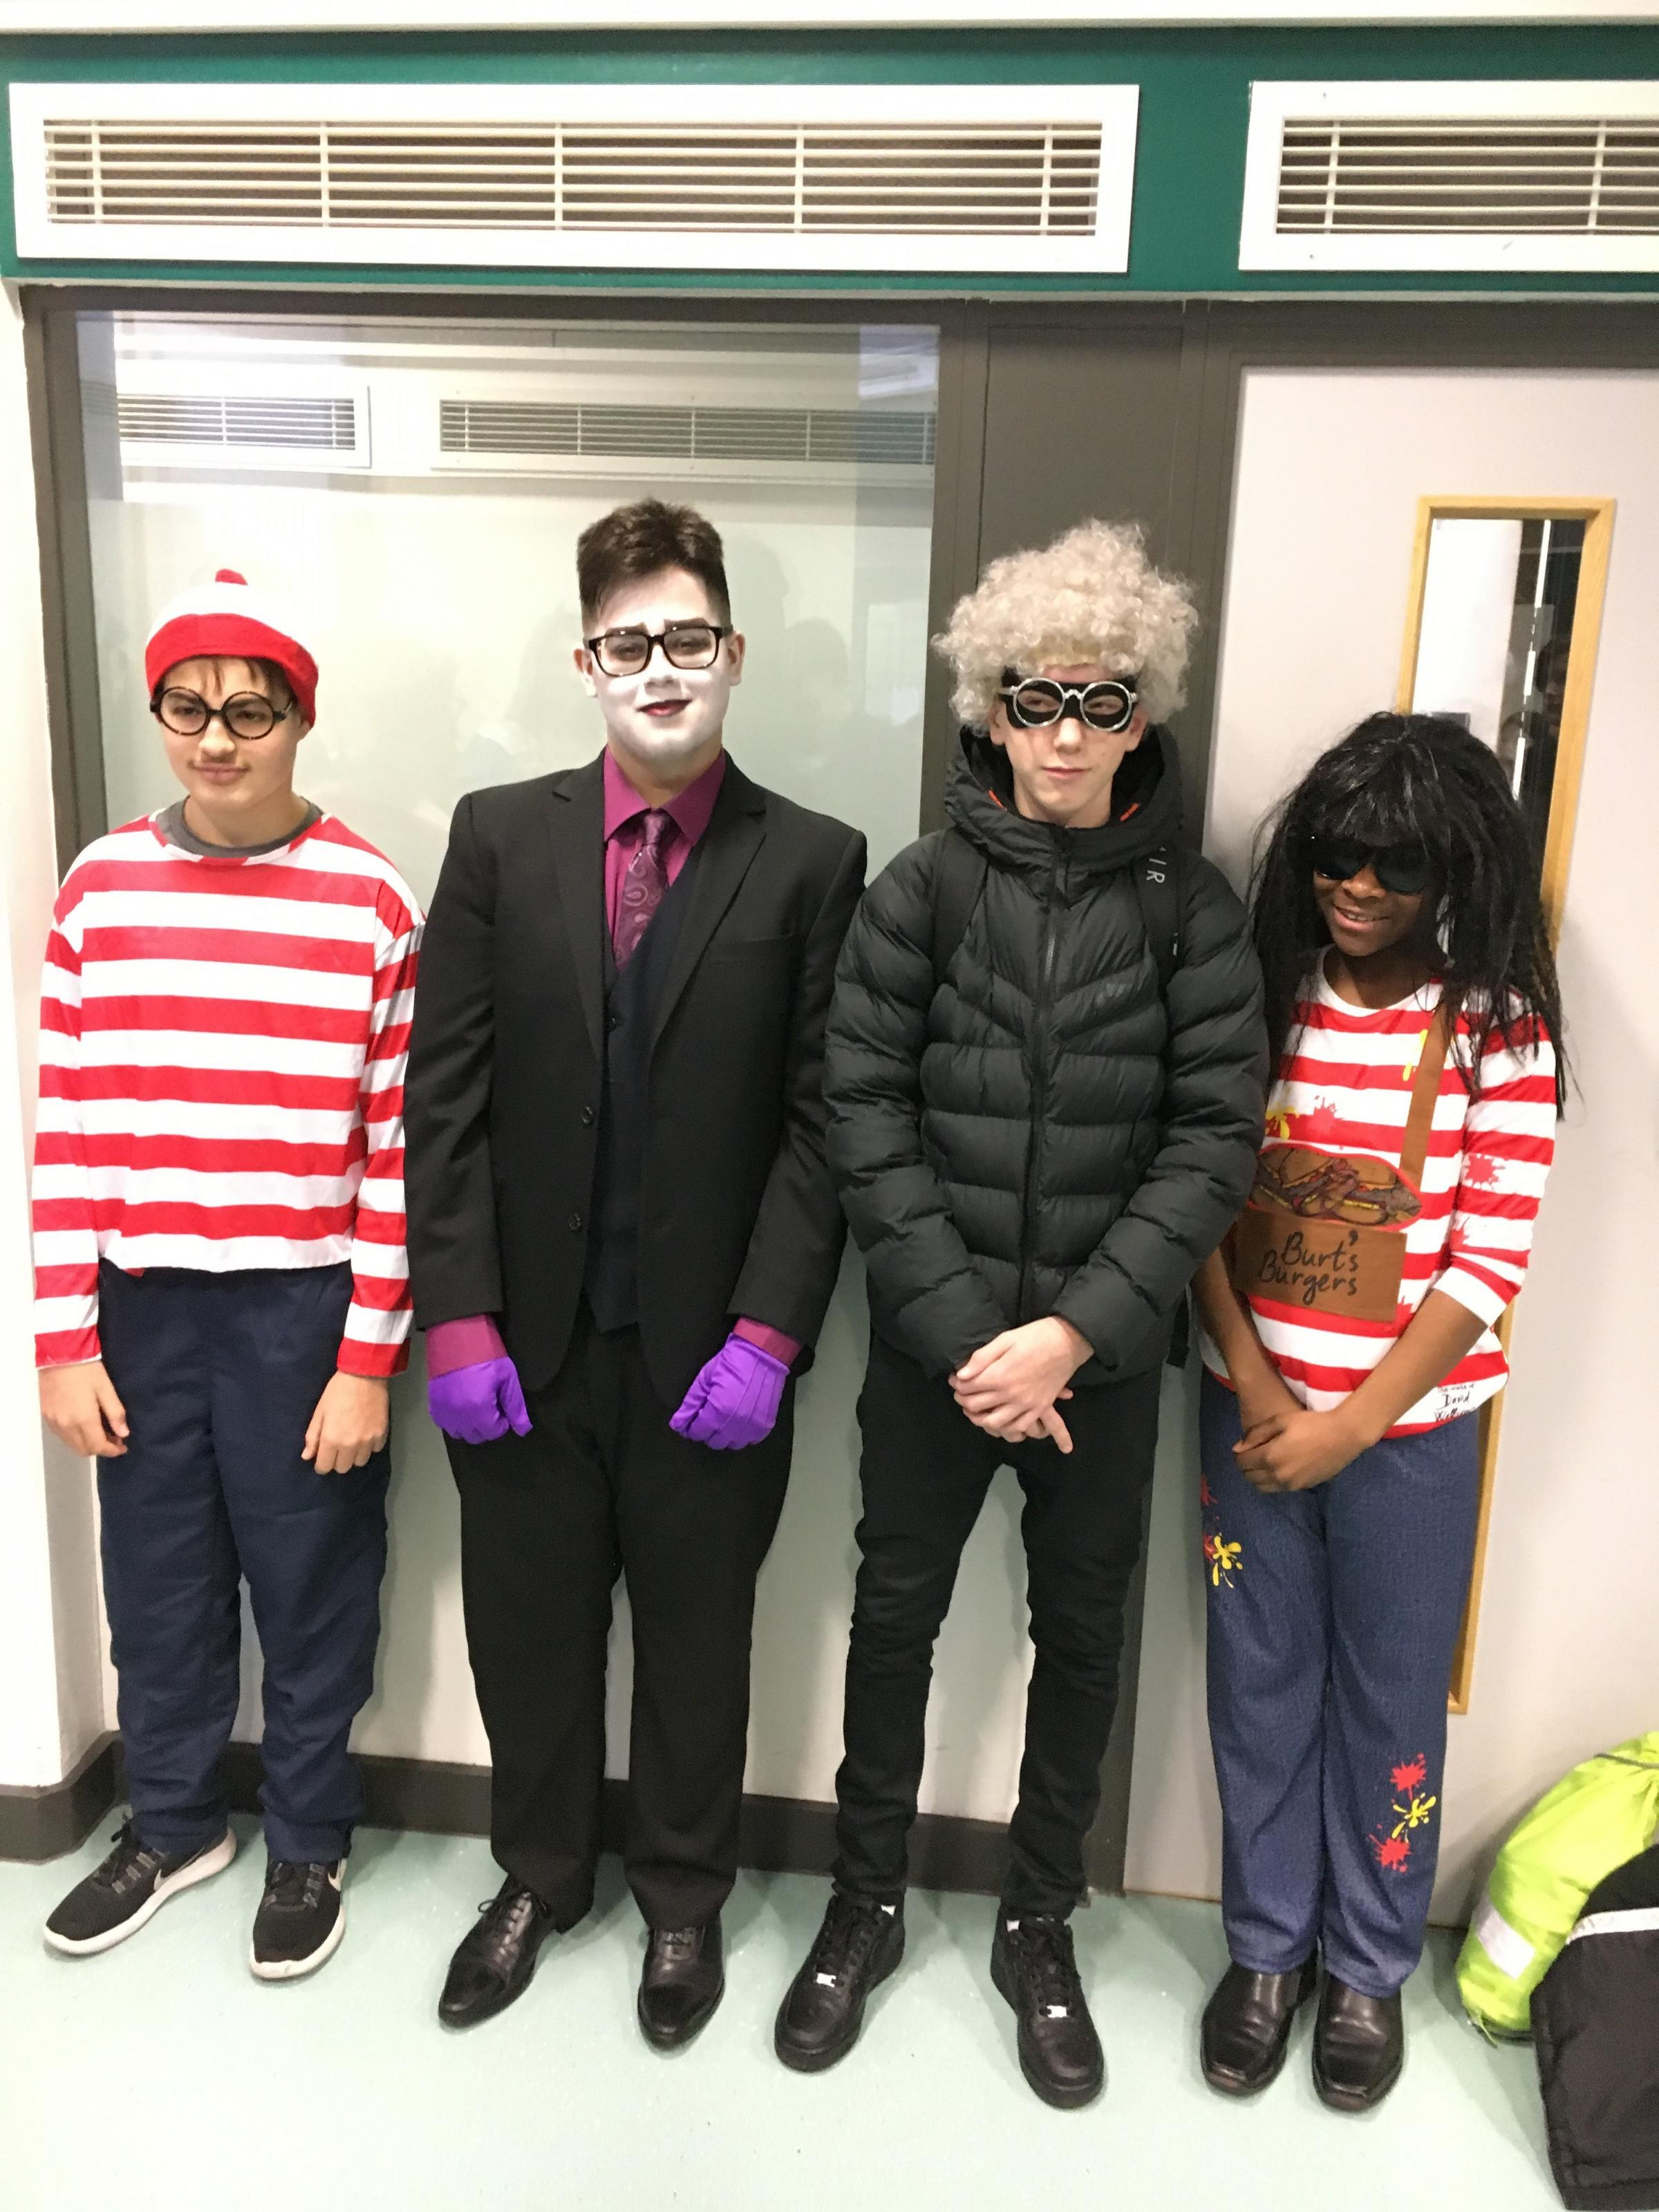 Students and teachers at Twickenham School donned their best outfits on World Book Day. © Tom Barnes.